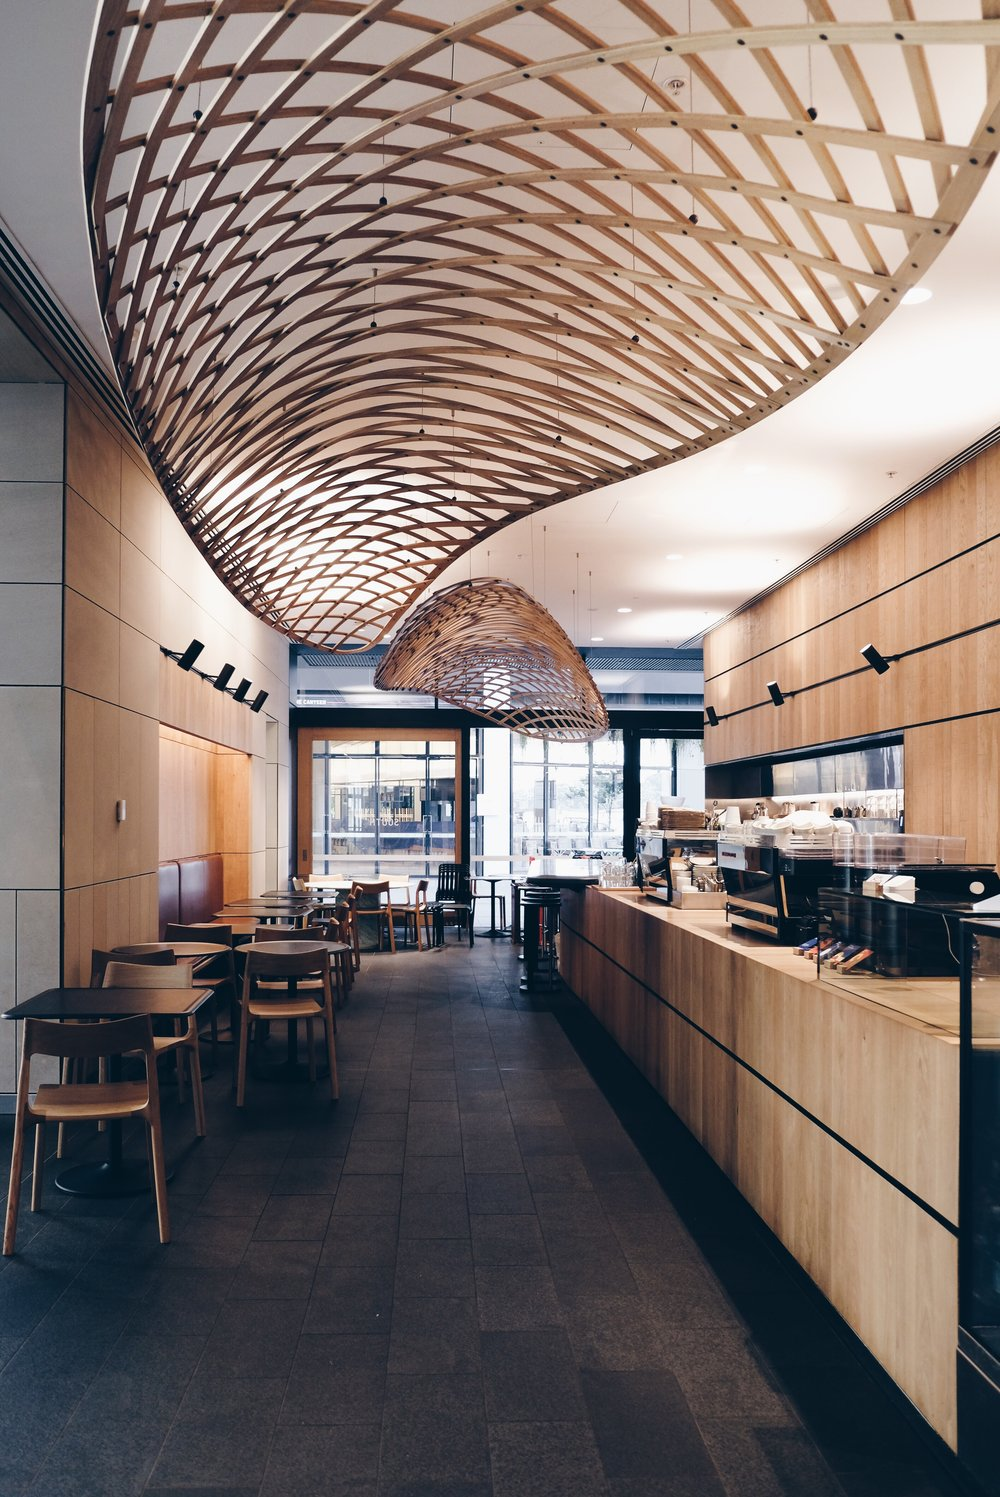 D U K E S / Dukes Coffee Roasters   Dukes spotted in Sydney! This coffee shop from Melbourne shift to the North and opened its branch in Sydney Barangaroo. A completely different vibes from its shop in Melbourne, this one in the North is located in modern office tower lobby.  📍Tower One International Towers  Sydney  100 Barangaroo Avenue